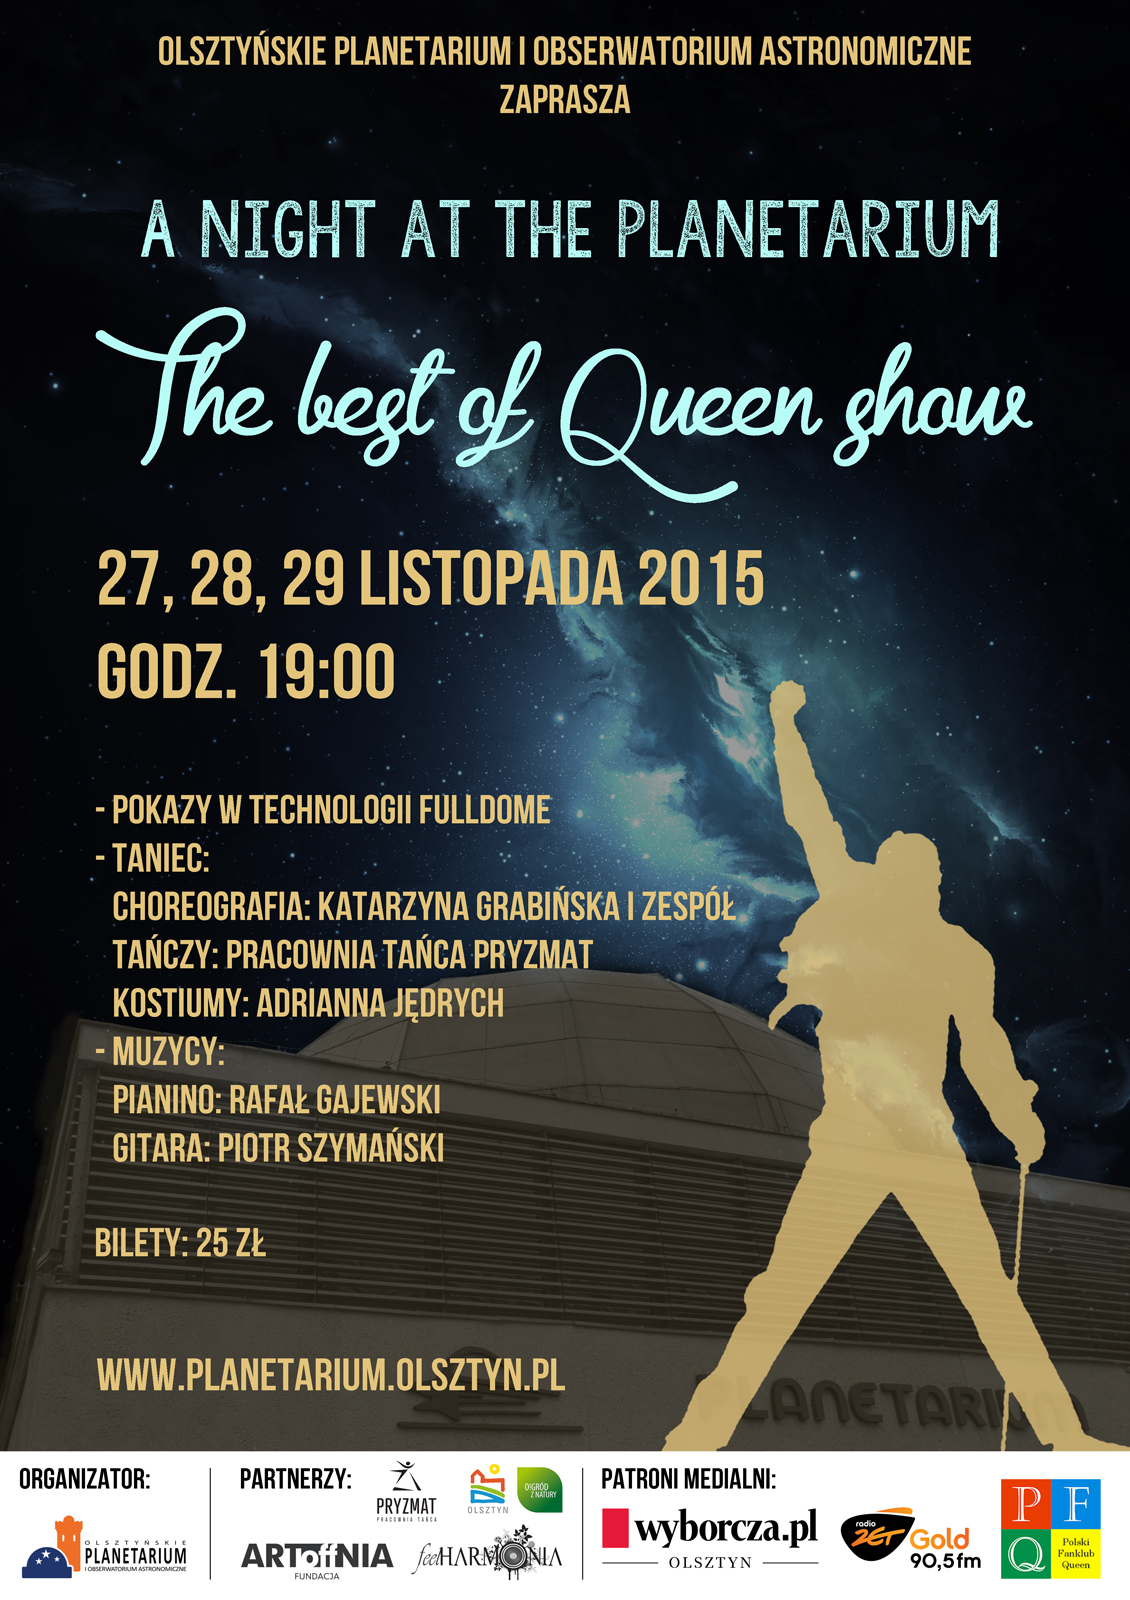 The best of Queen show - A night at the Planetarium